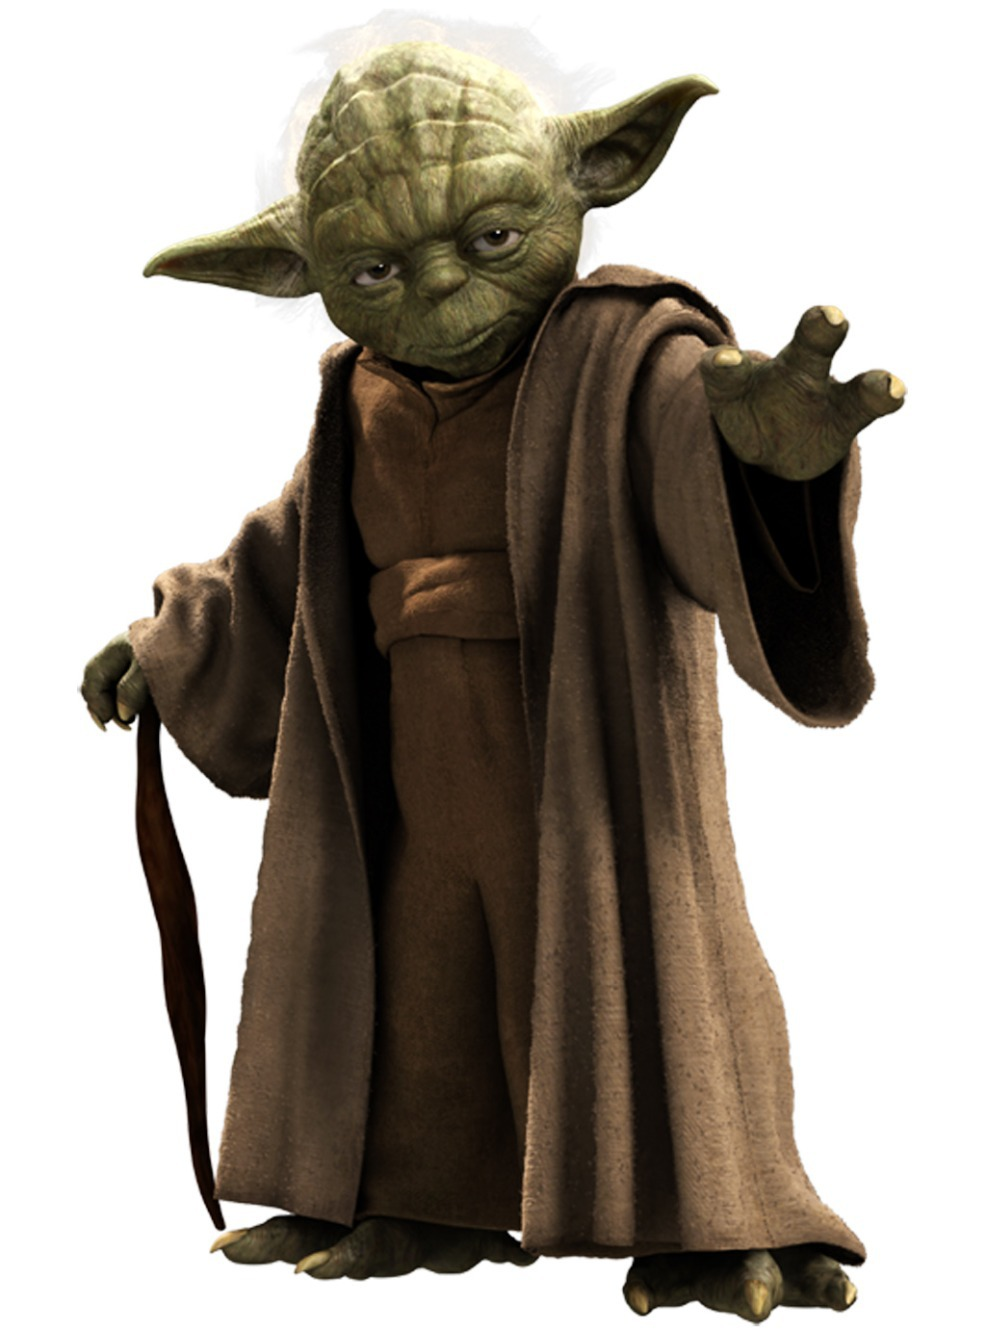 Popular Yoda Fabric Buy Cheap Yoda Fabric Lots From China